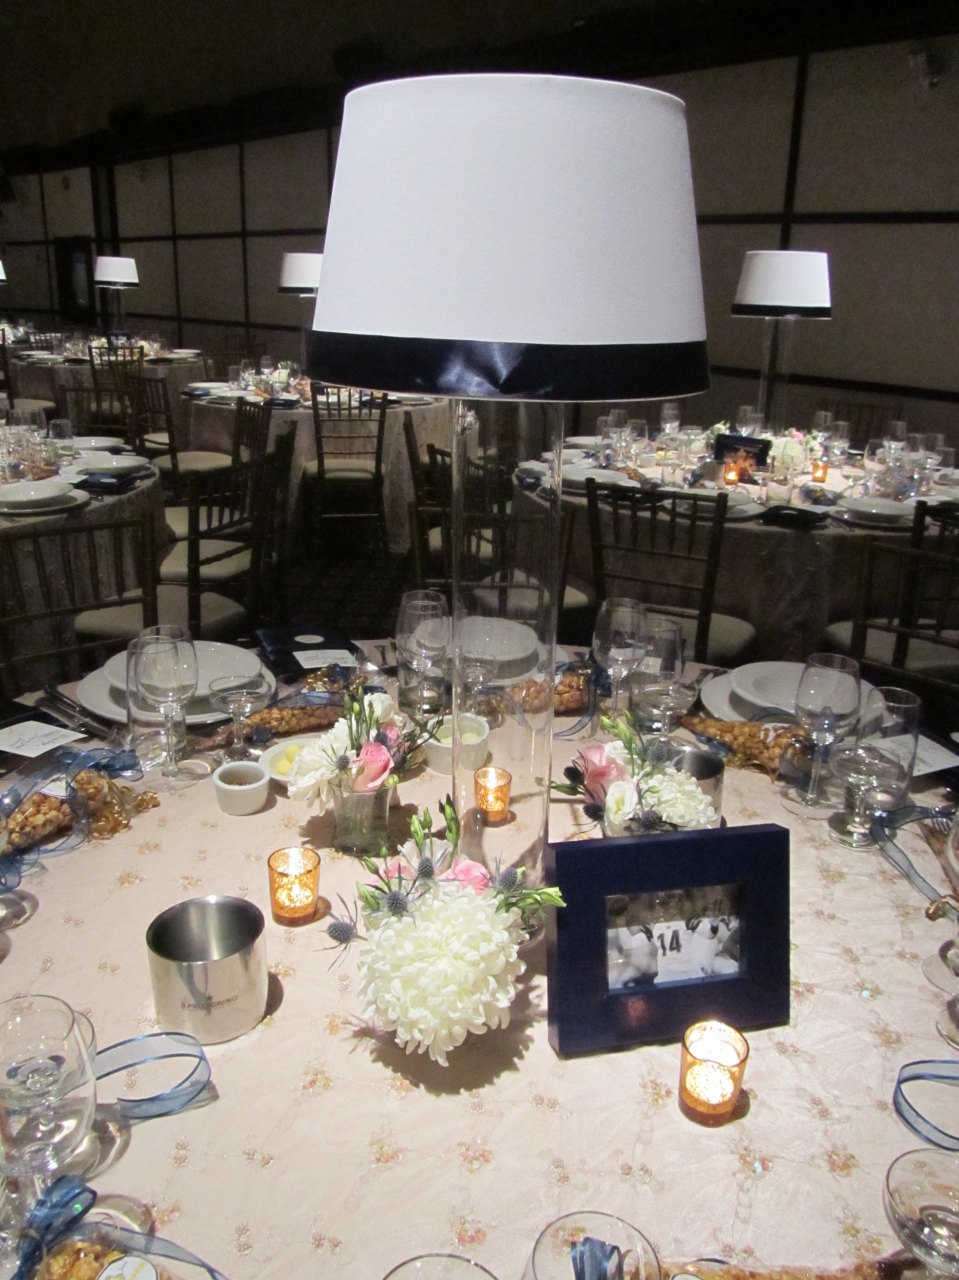 Lampshade centerpieces with bud vases